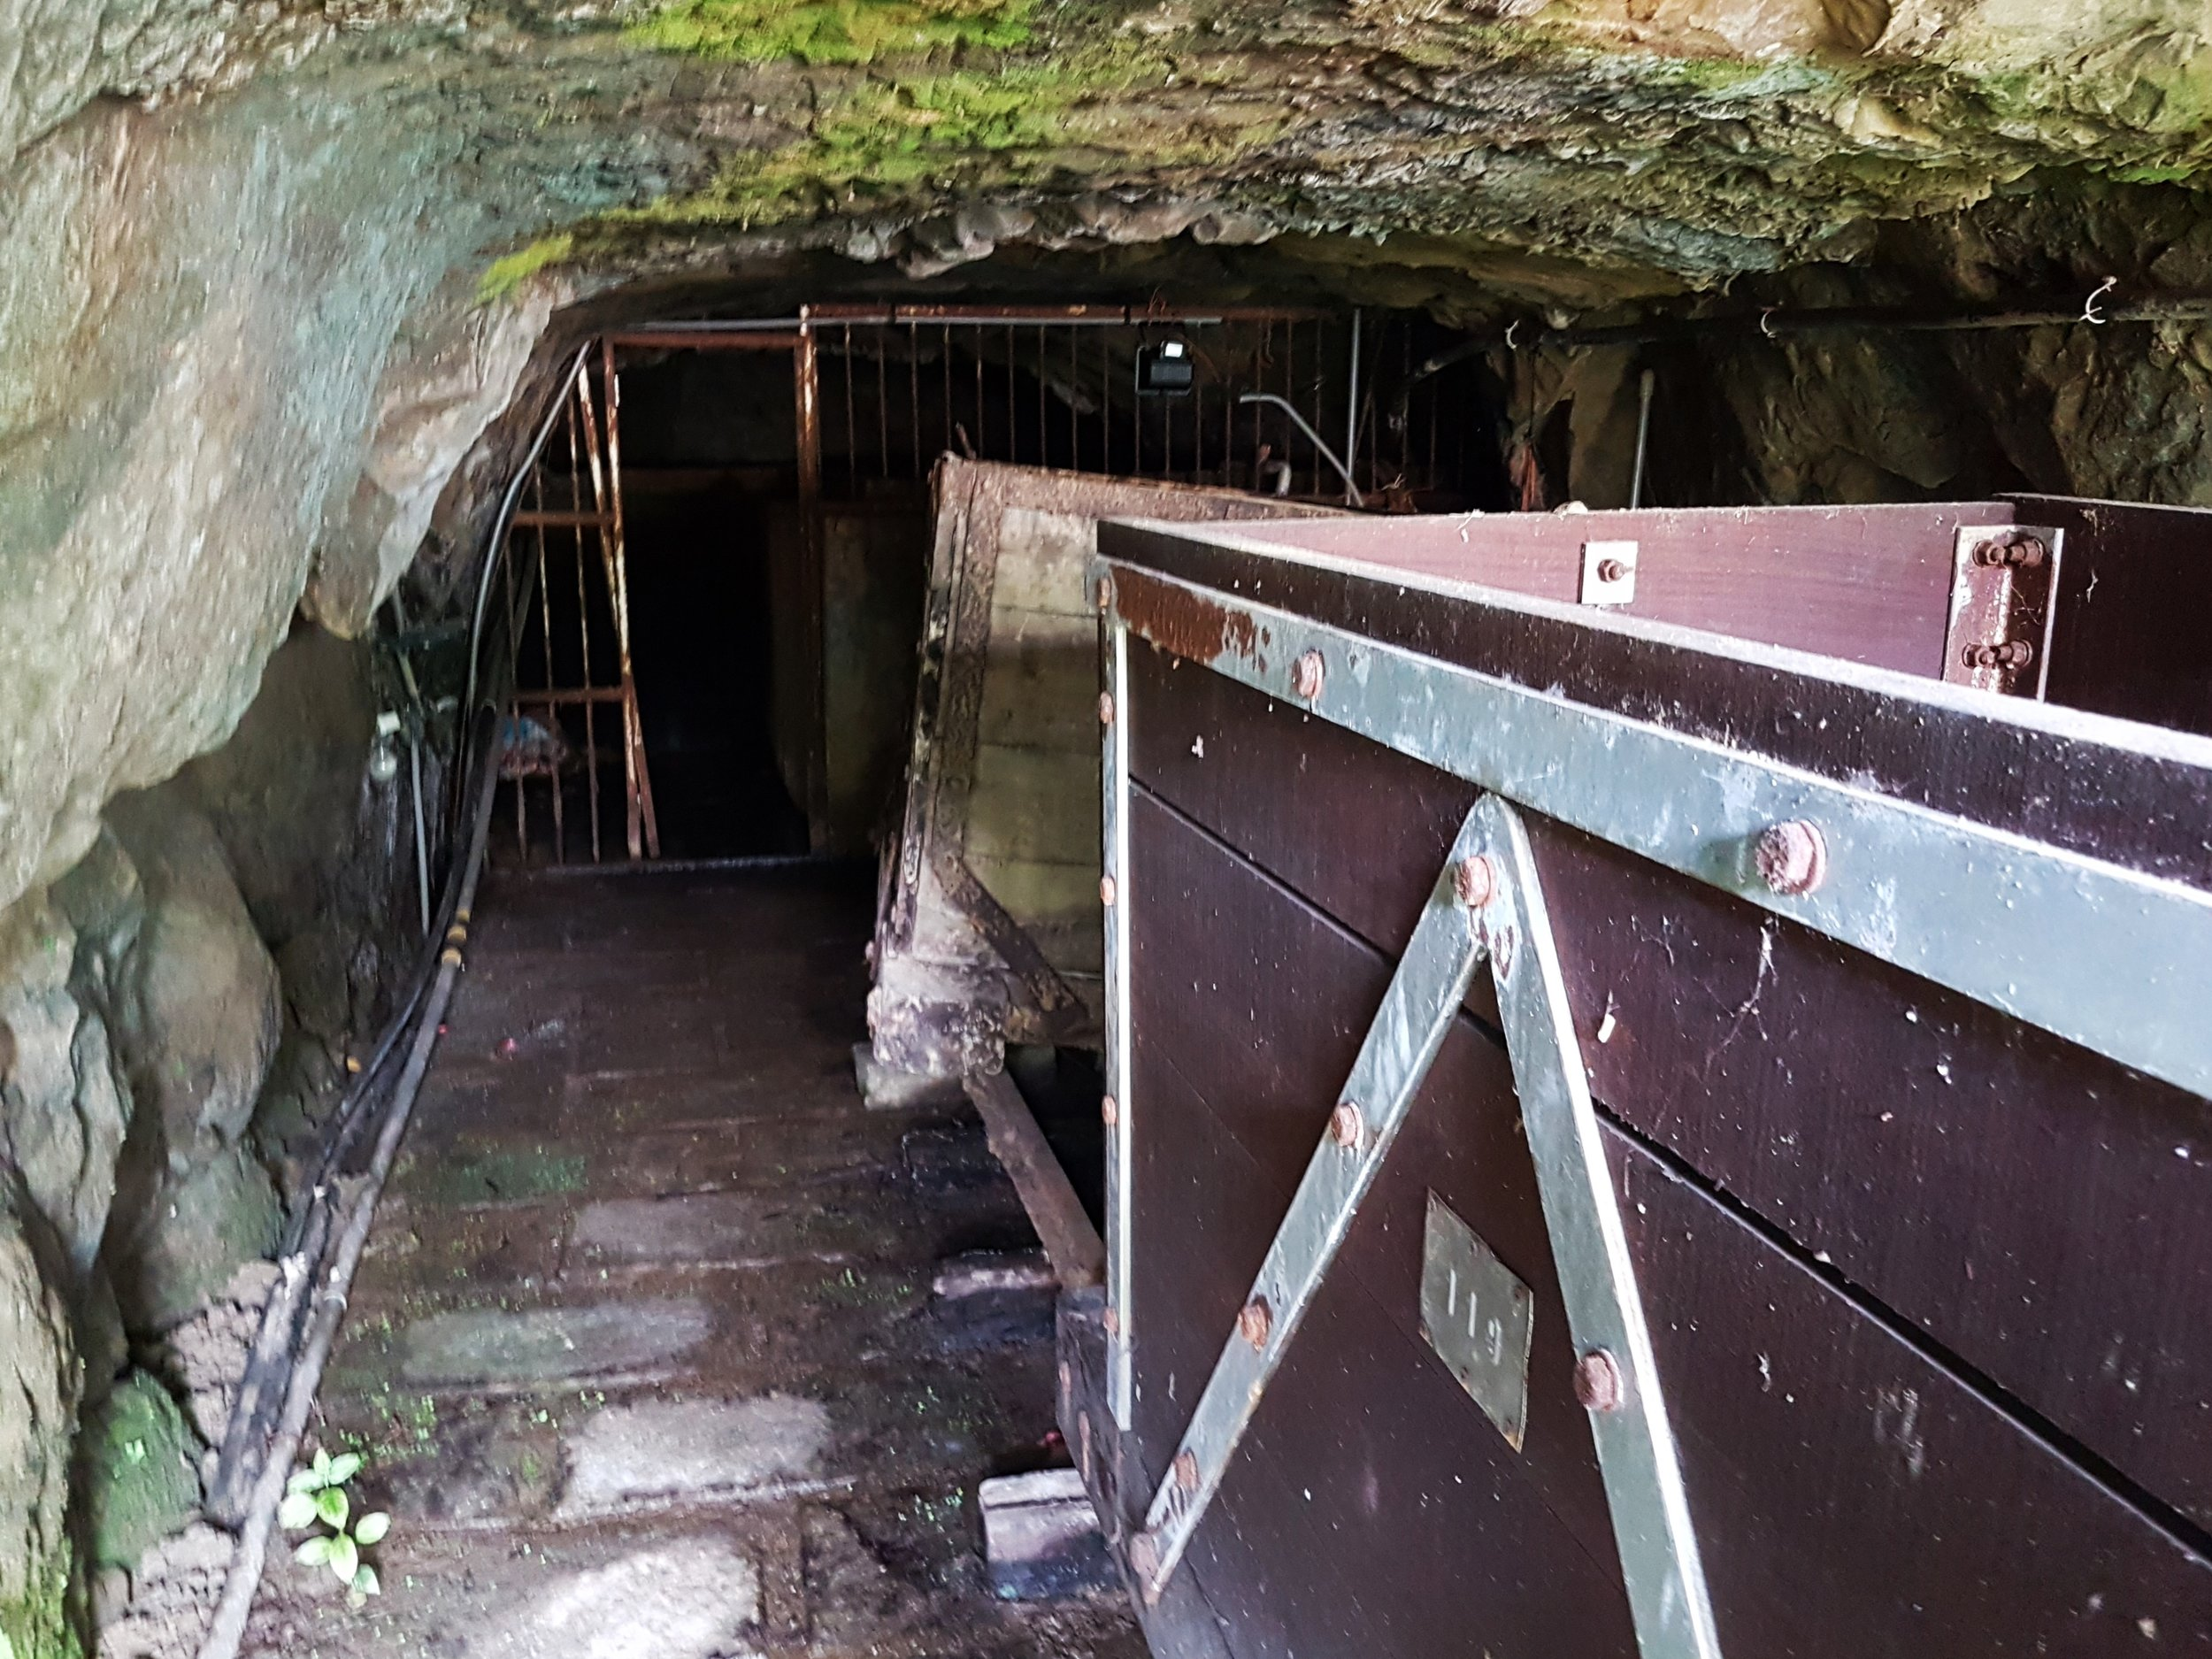 The carts on dry ground and the flooded deeper tunnel section.